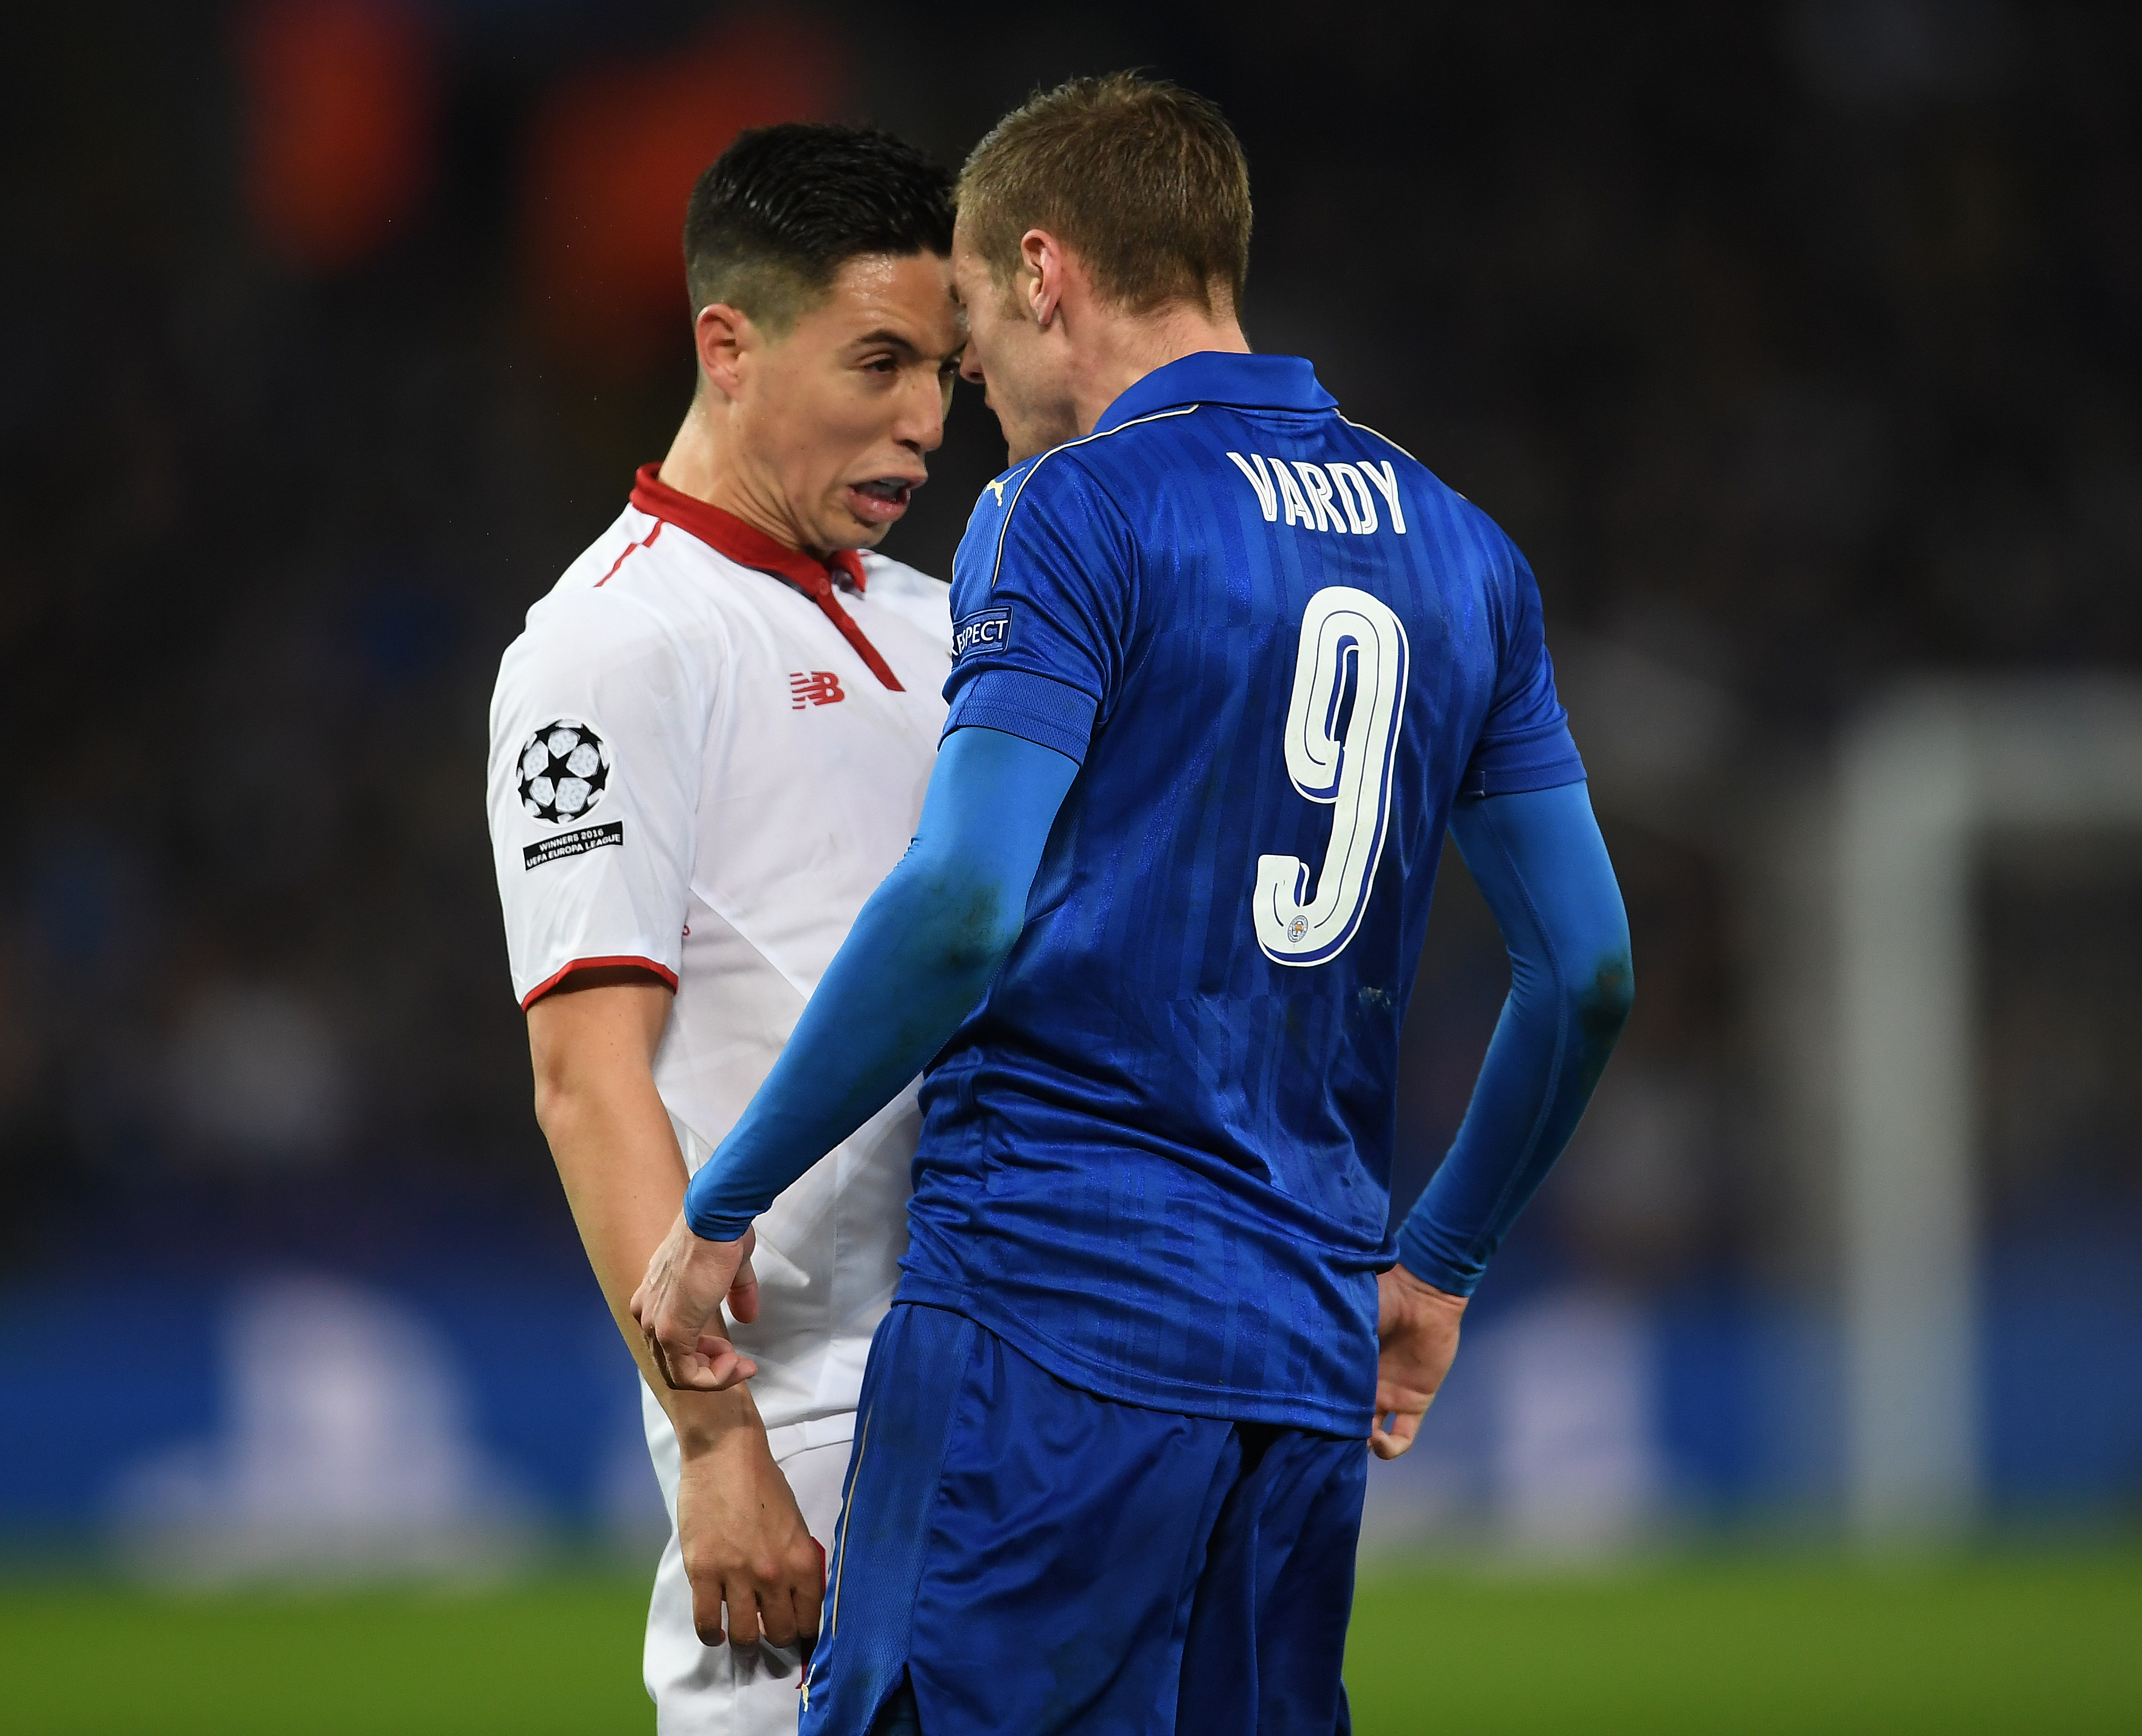 Leicester City's Champions League win over Sevilla shows they're the exception to all rules